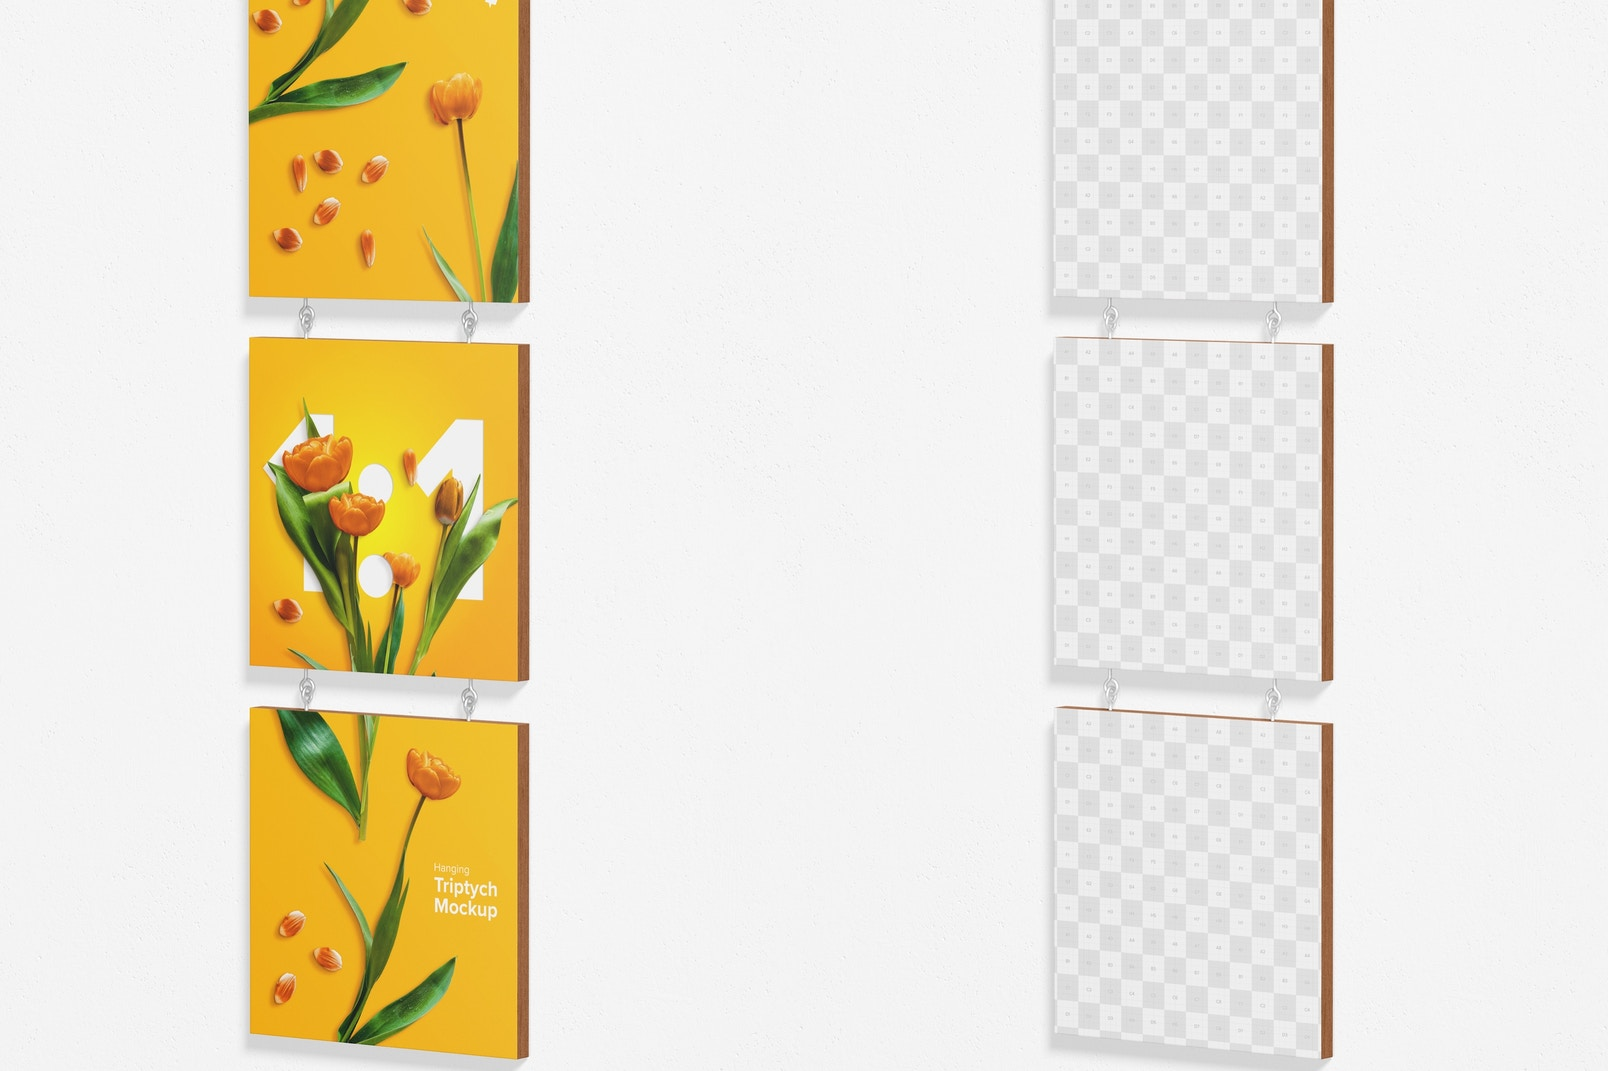 1:1 Hanging Triptych Mockup, Right View